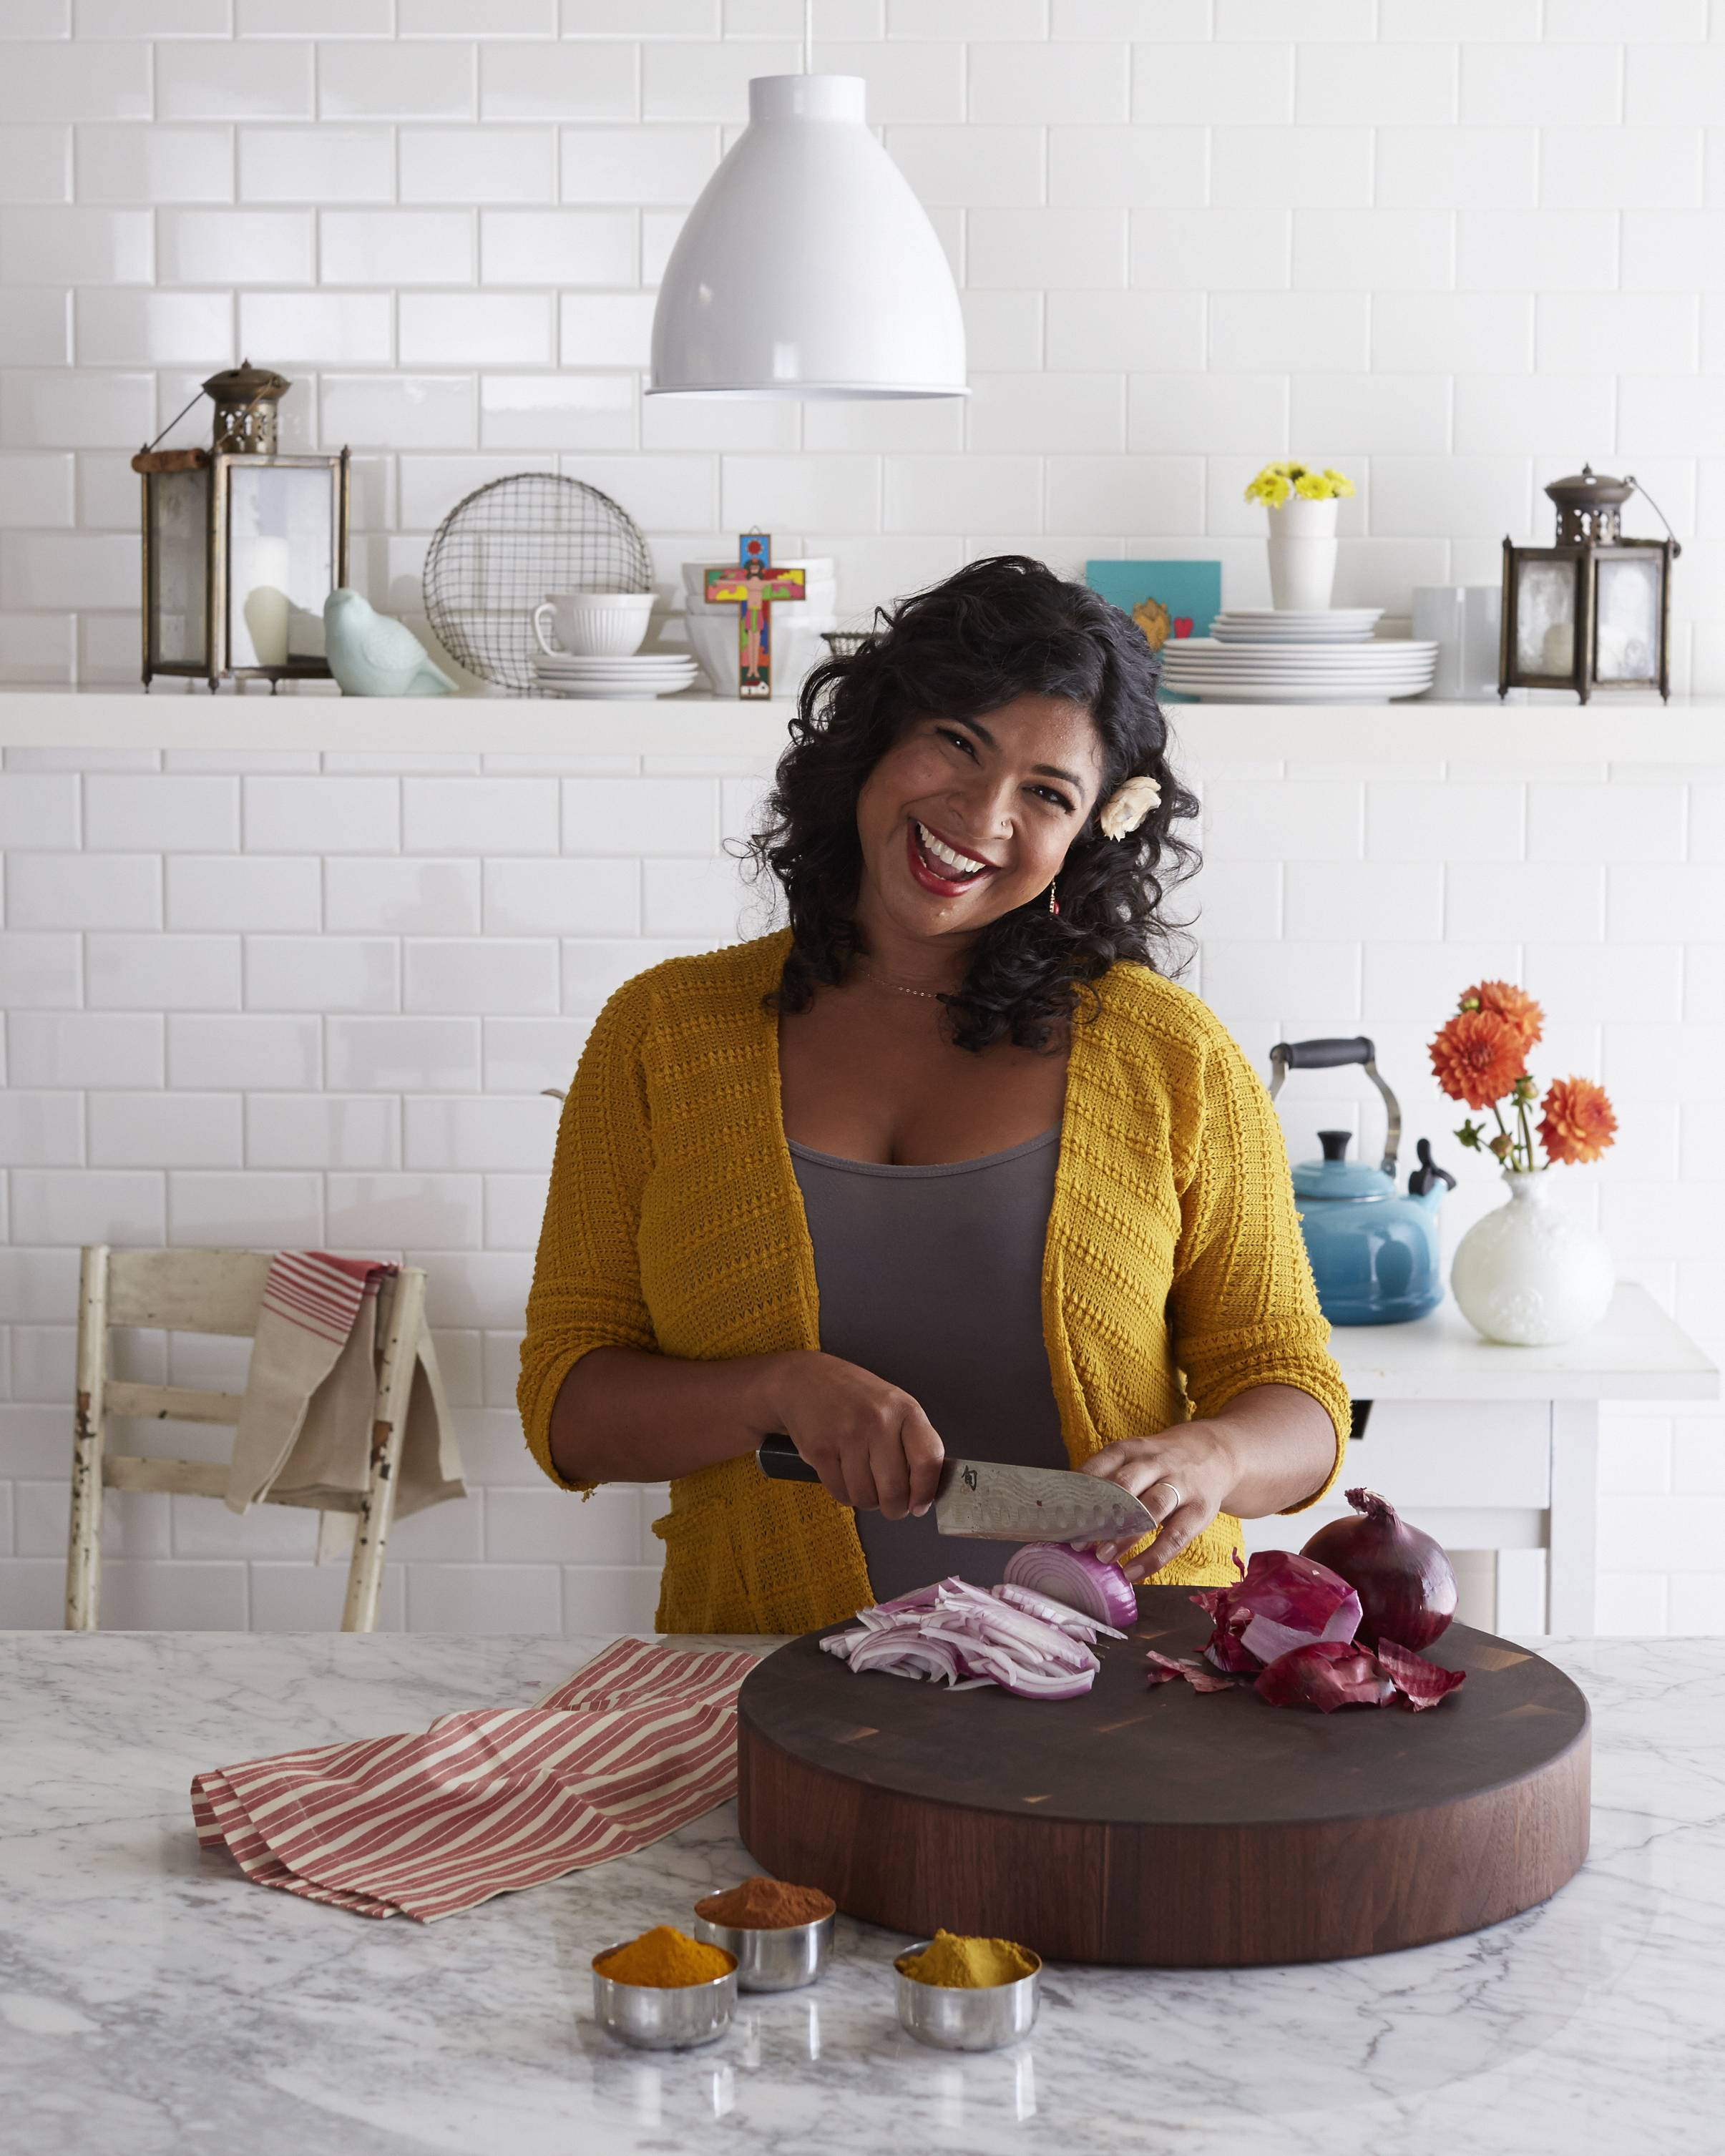 Aarti Sequeira Recipes Food Tv are cooking show recipes bad for your health? - the boston